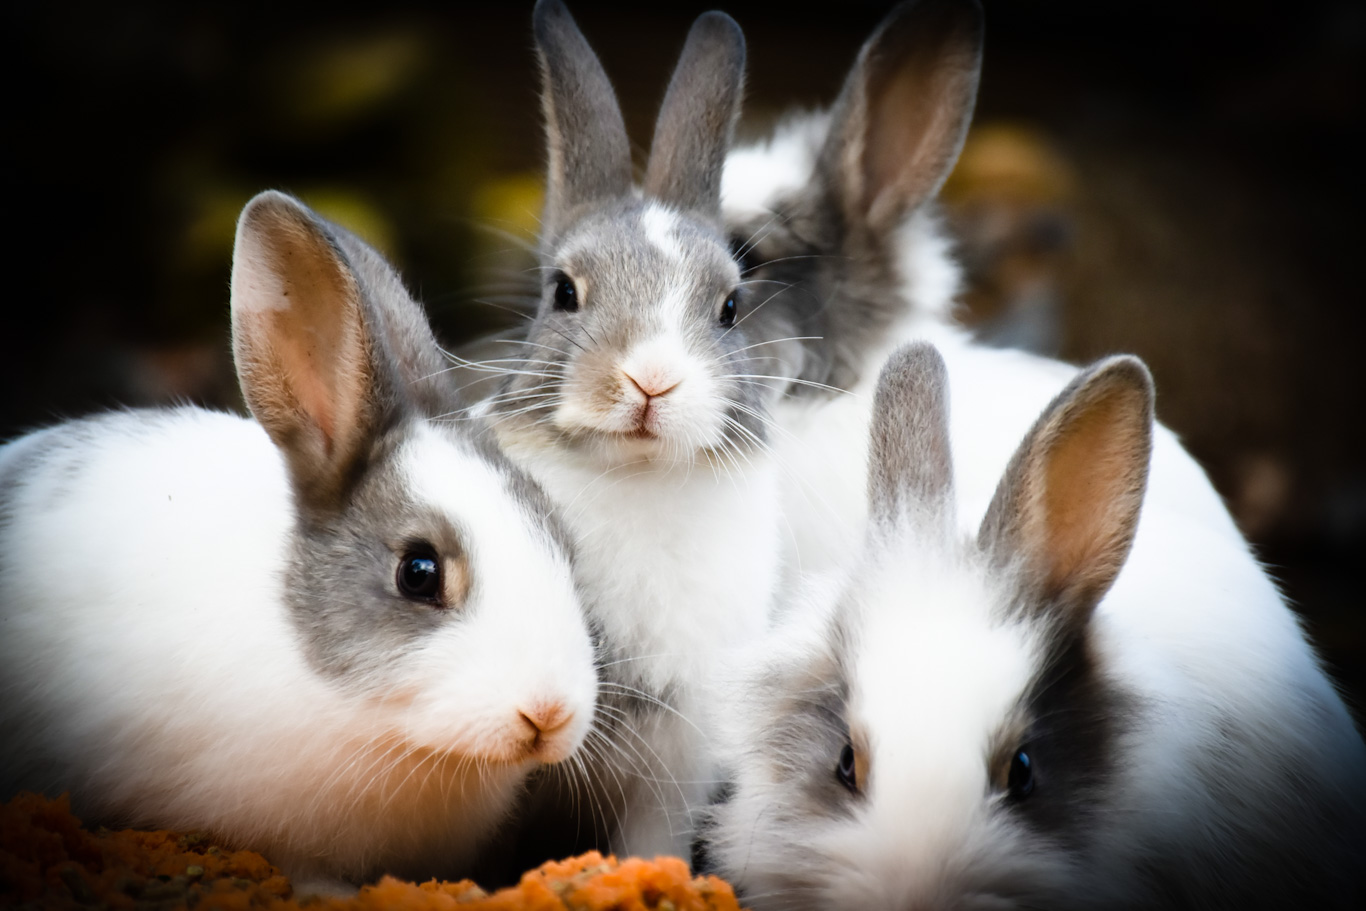 Rabbits with grimy bums.